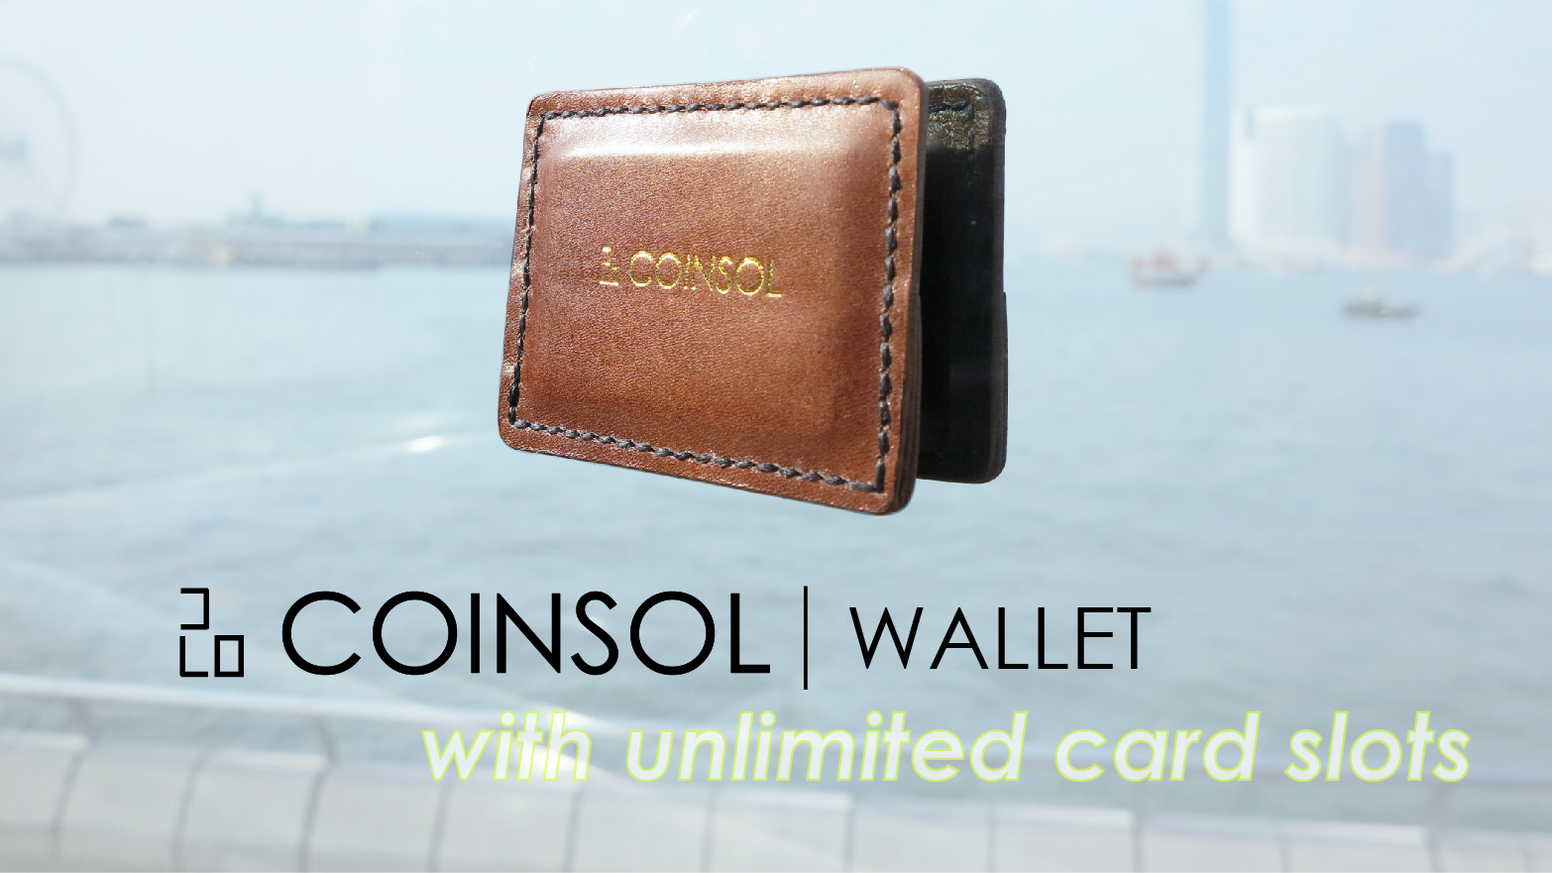 Feel the magic, explore possibilities. COINSOL is a wallet idea like never before.